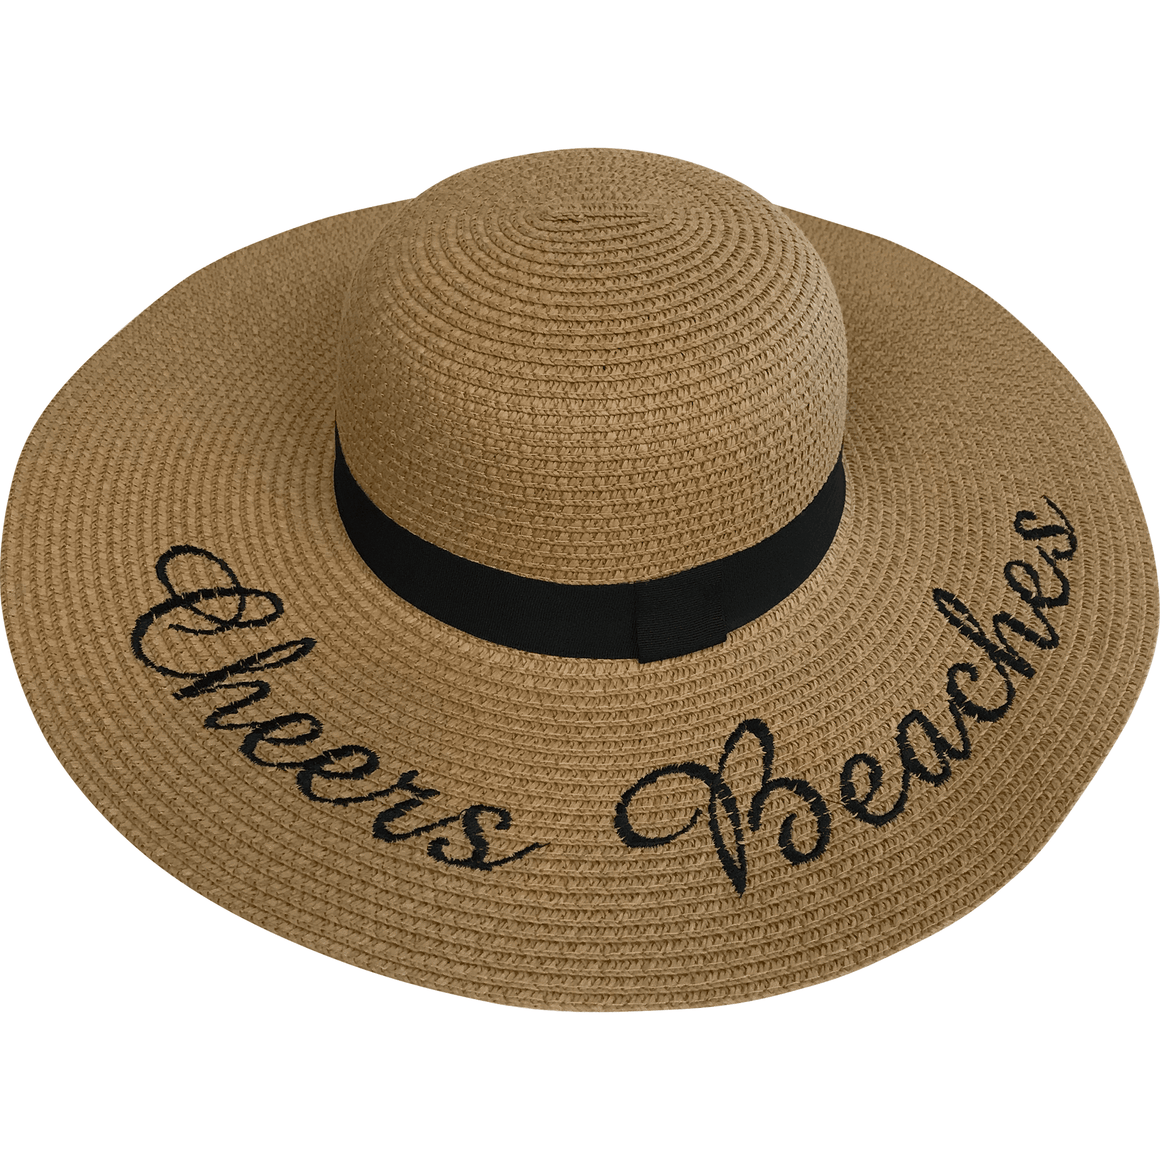 Cheers Beaches Women Cheers Beaches Floppy Sun Hat: Tan